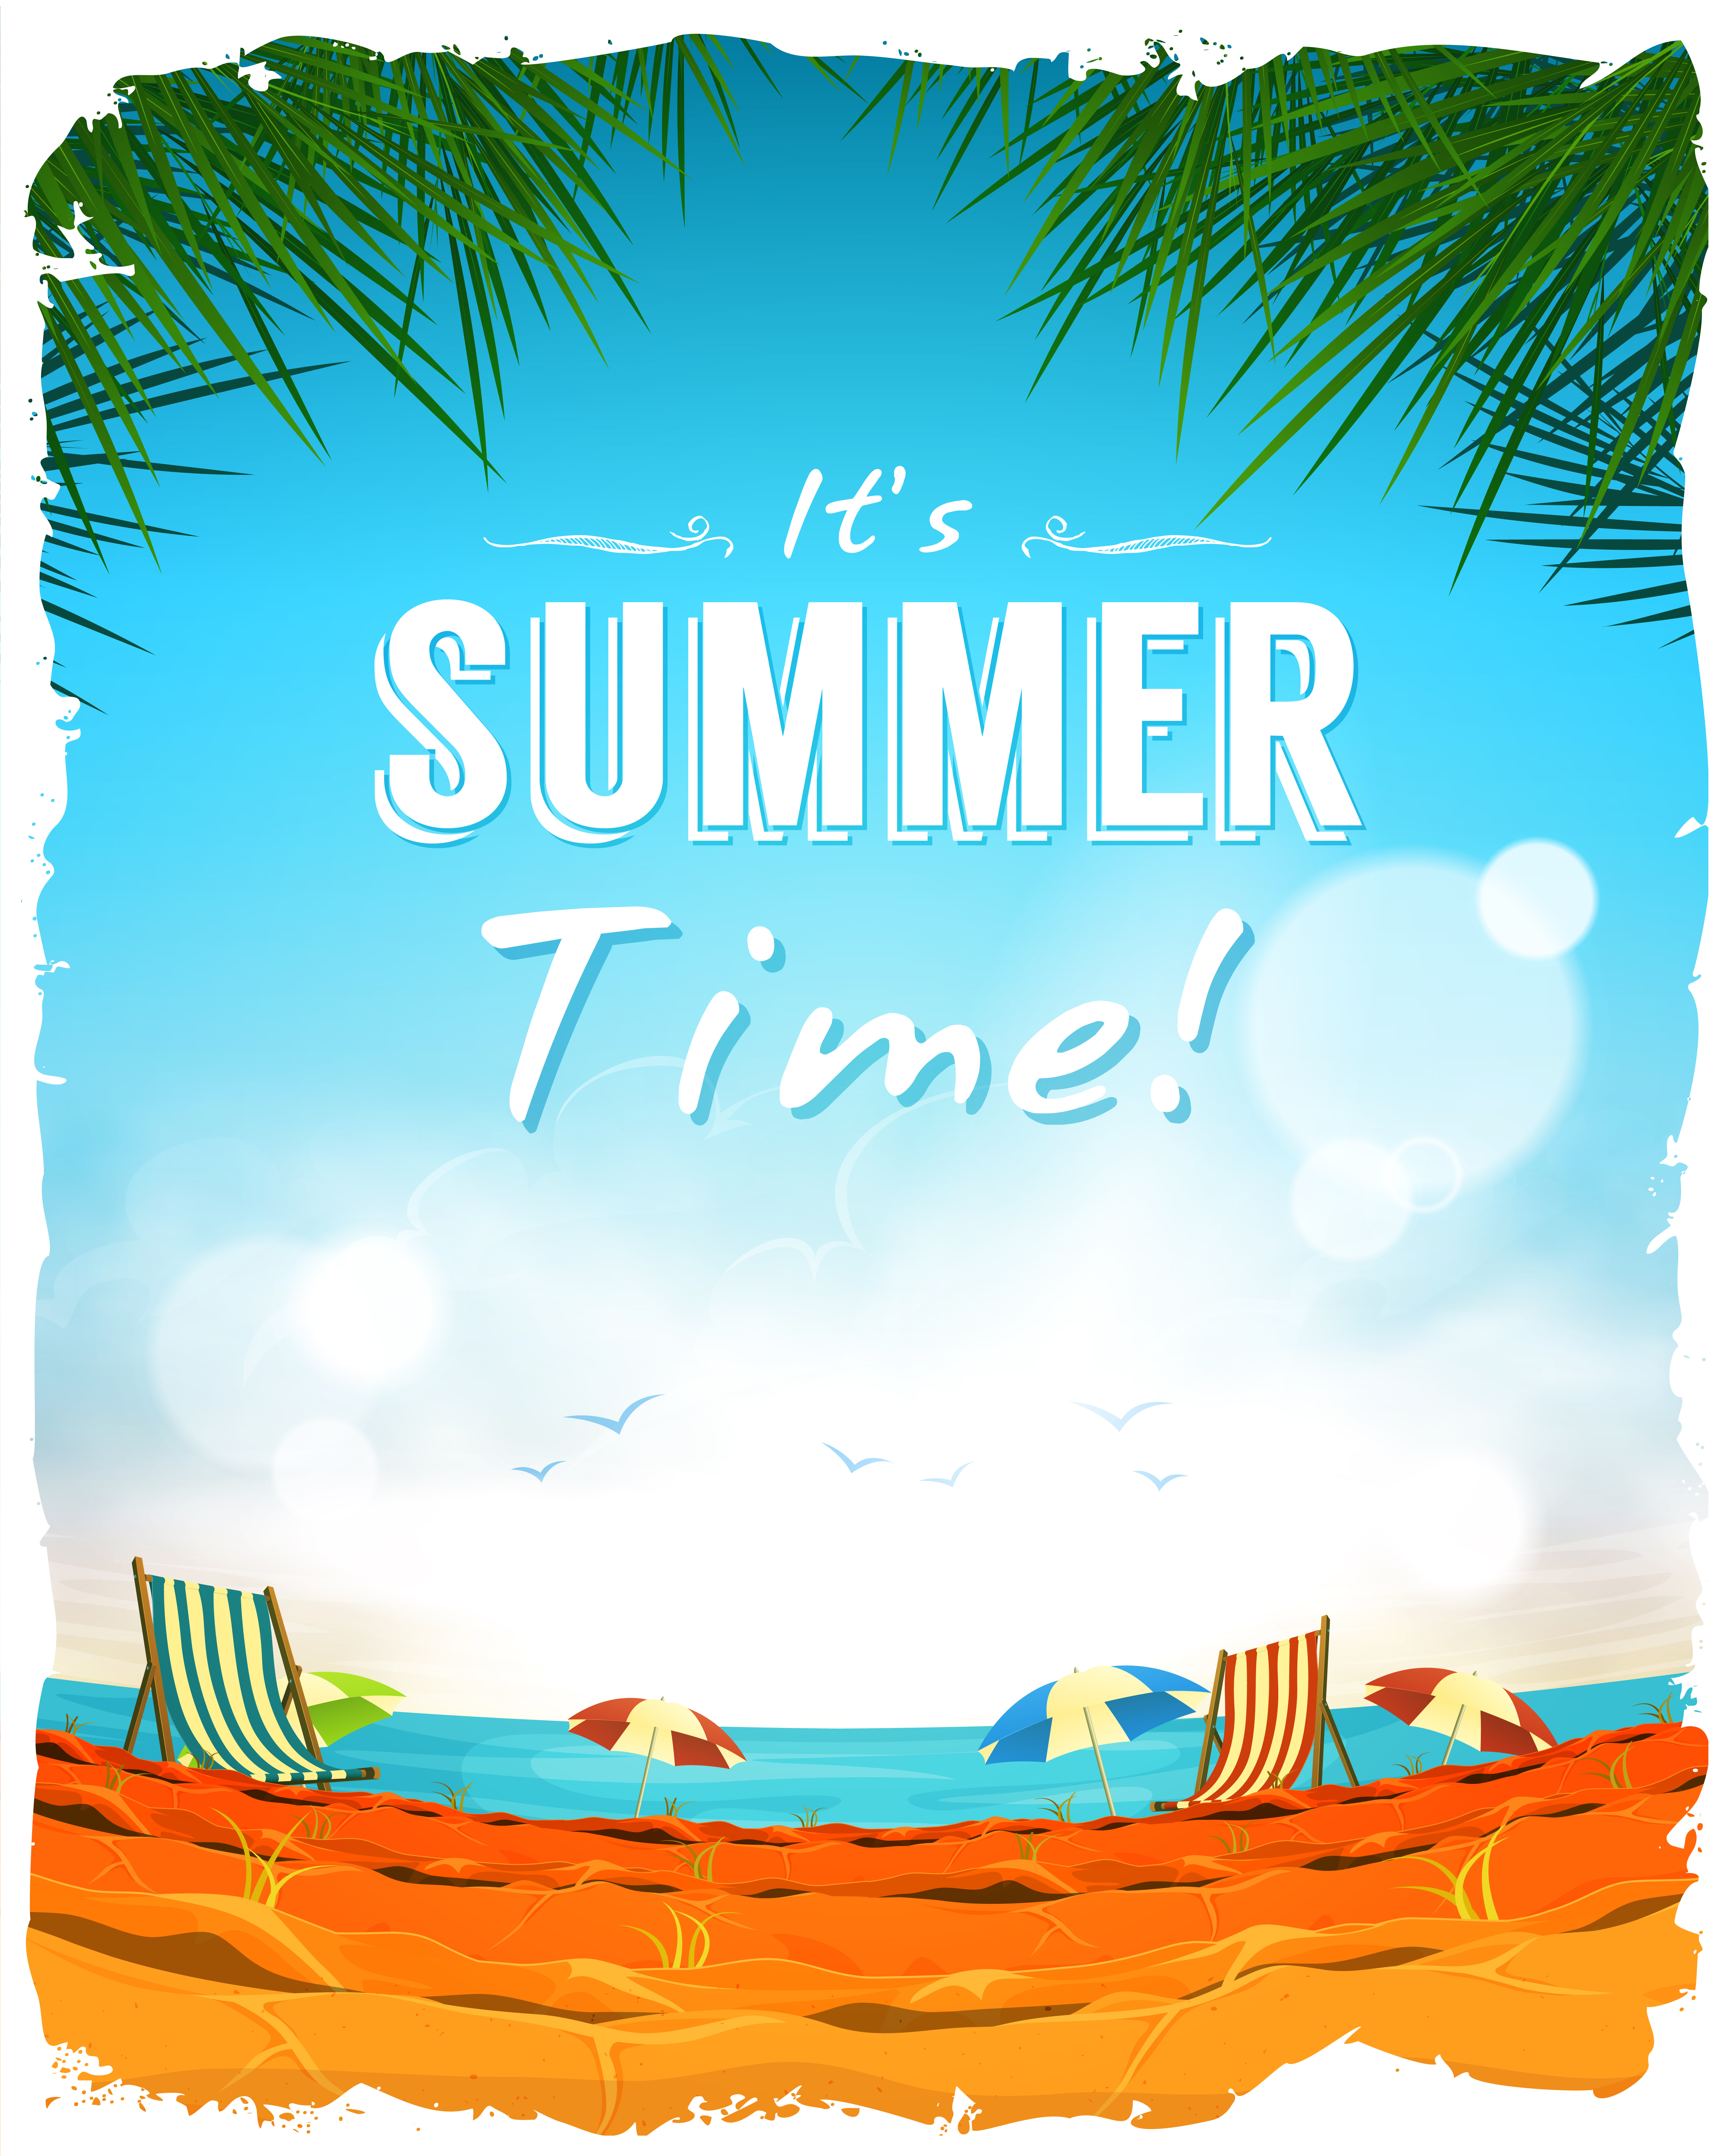 Summer Time Poster Background - Download Free Vectors ...